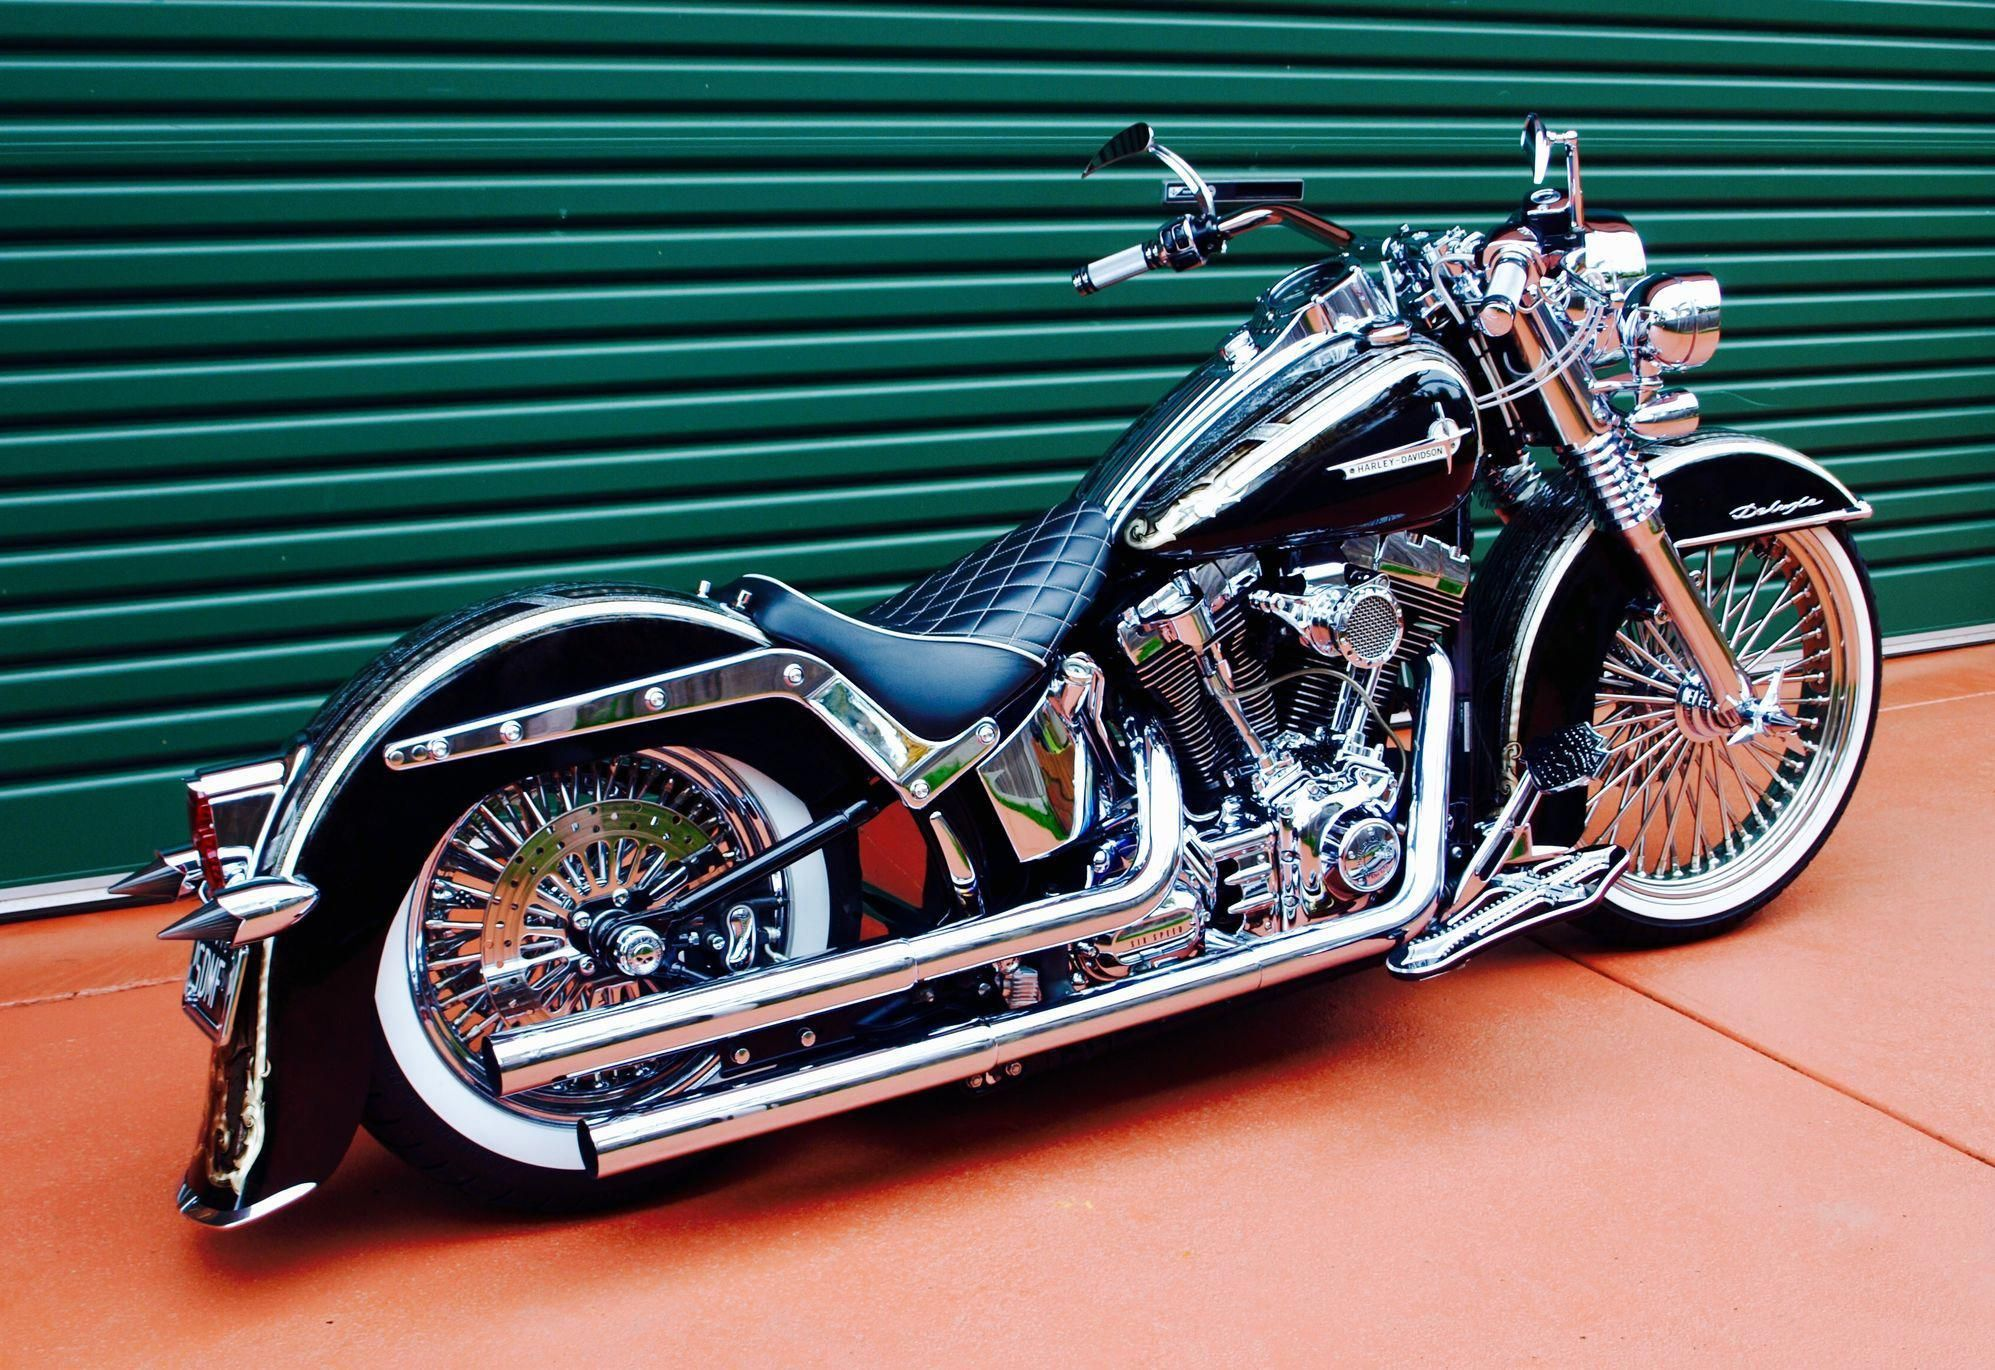 Harley Davidson Log: Harley Davidson Forums